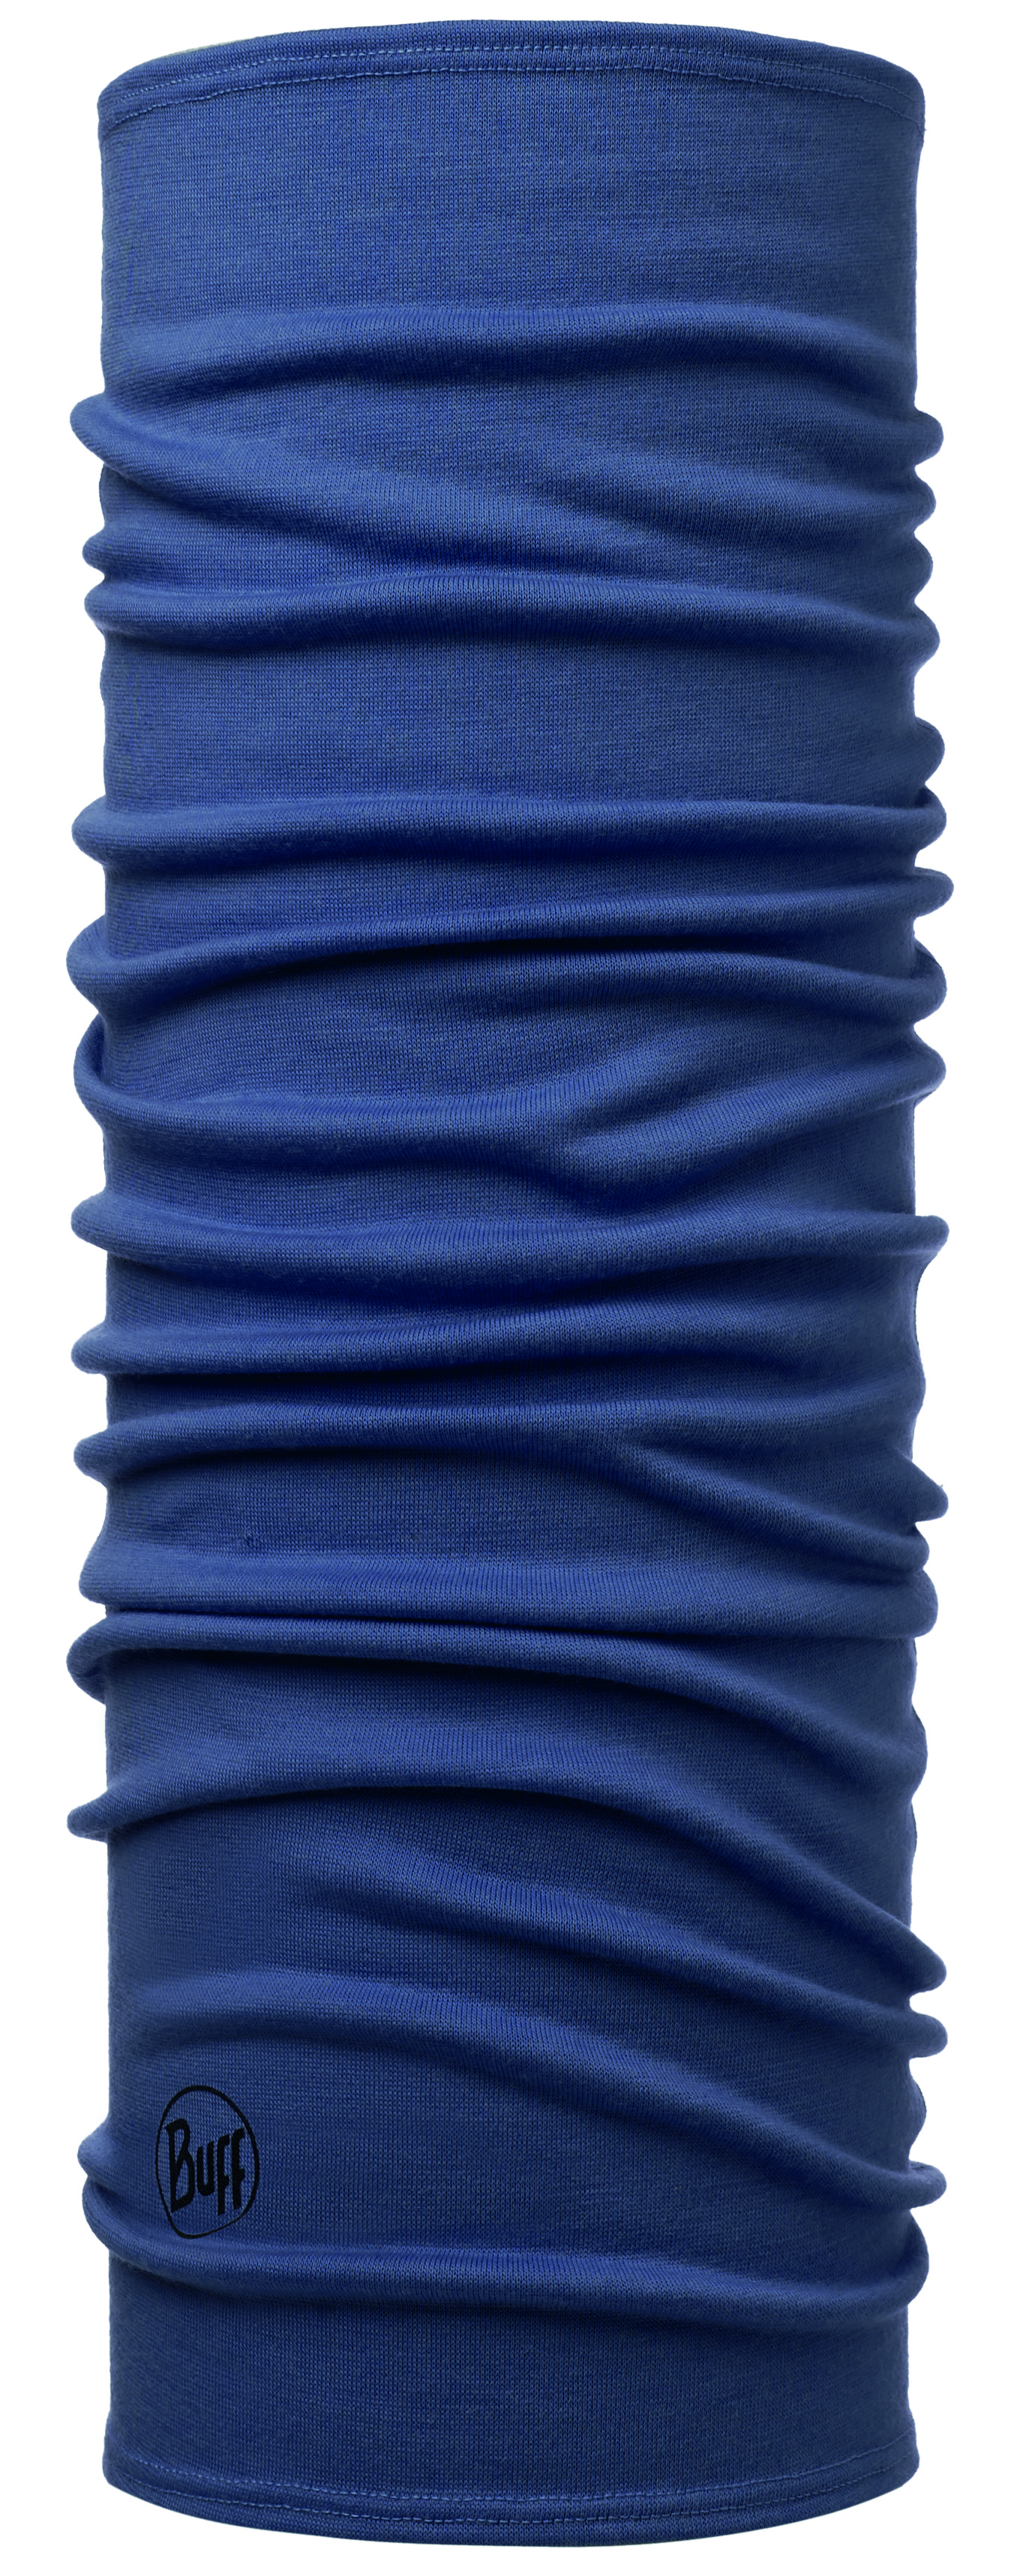 Бандана Buff Midweight Merino Wool Solid Estate Blue